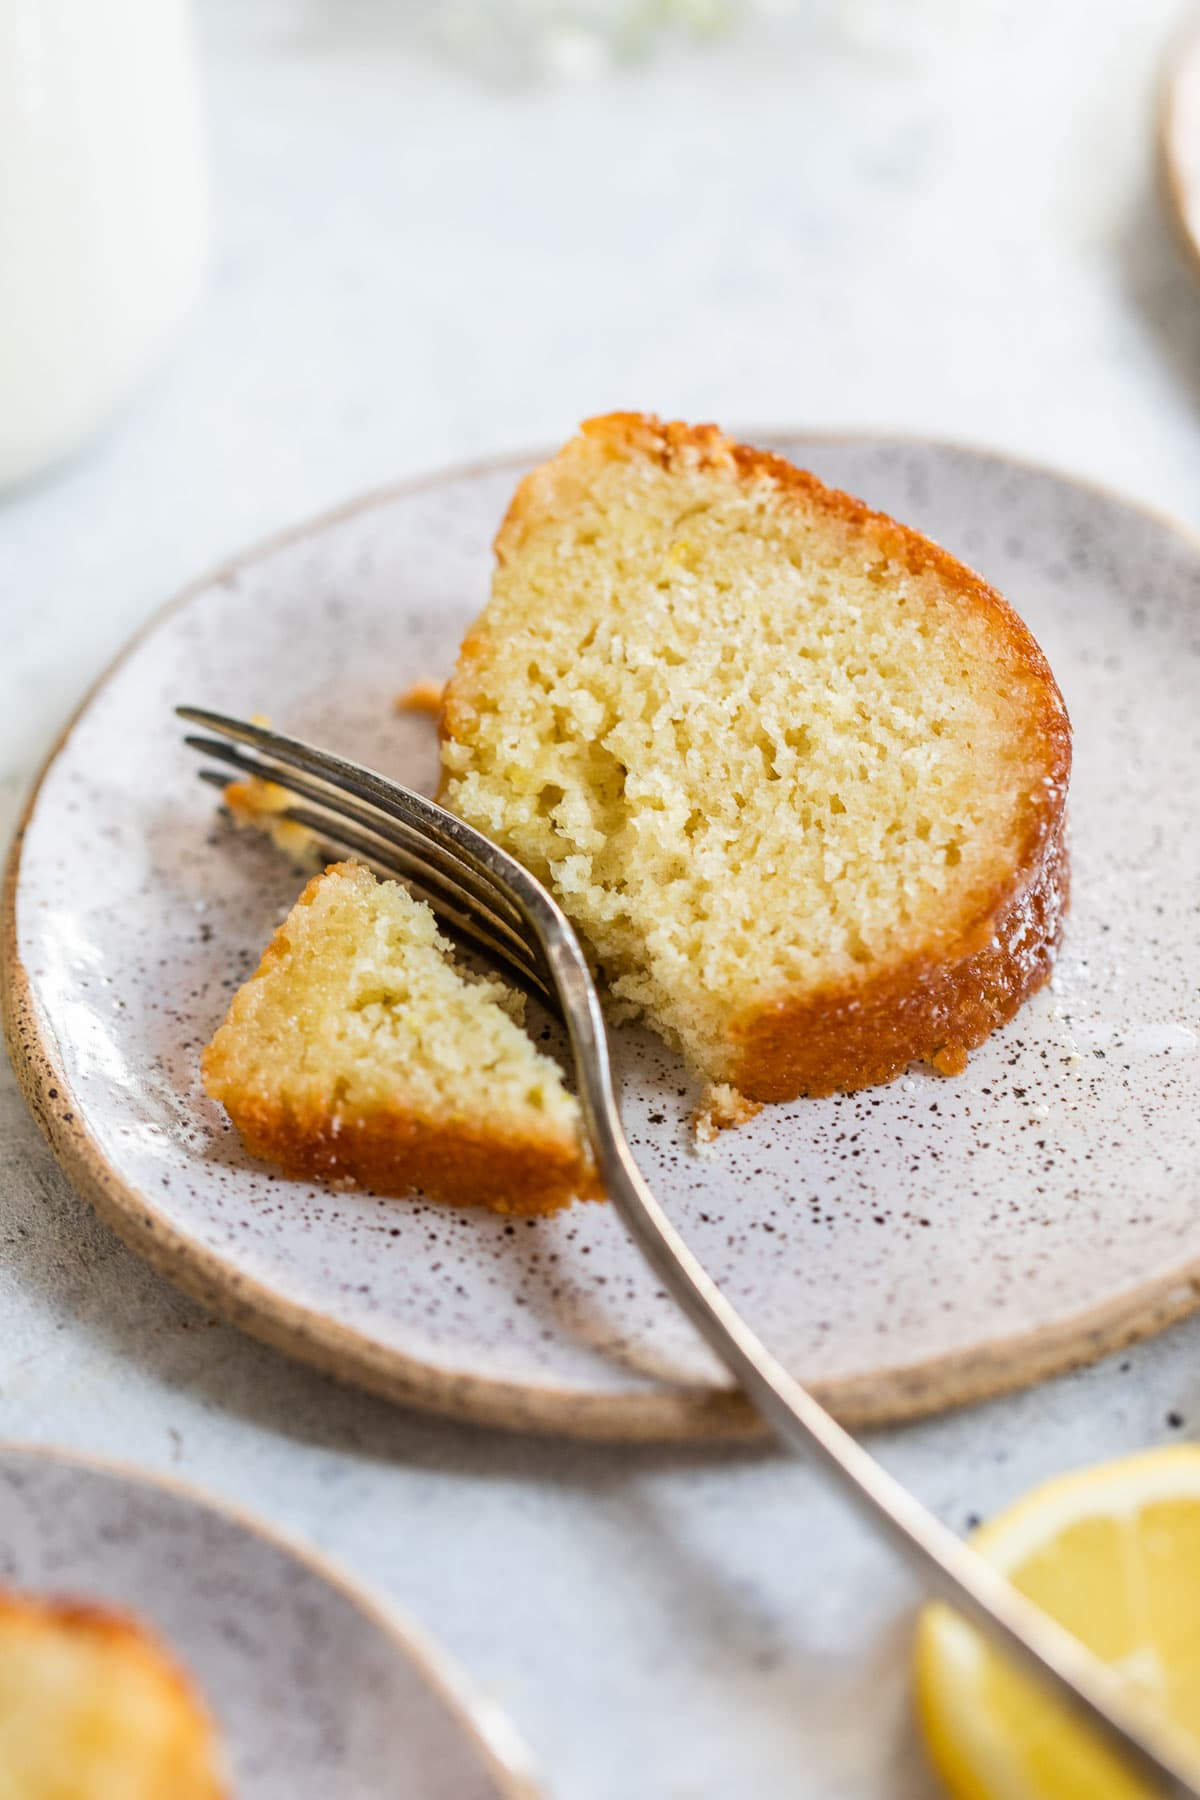 A slice of buttermilk cake on a plate